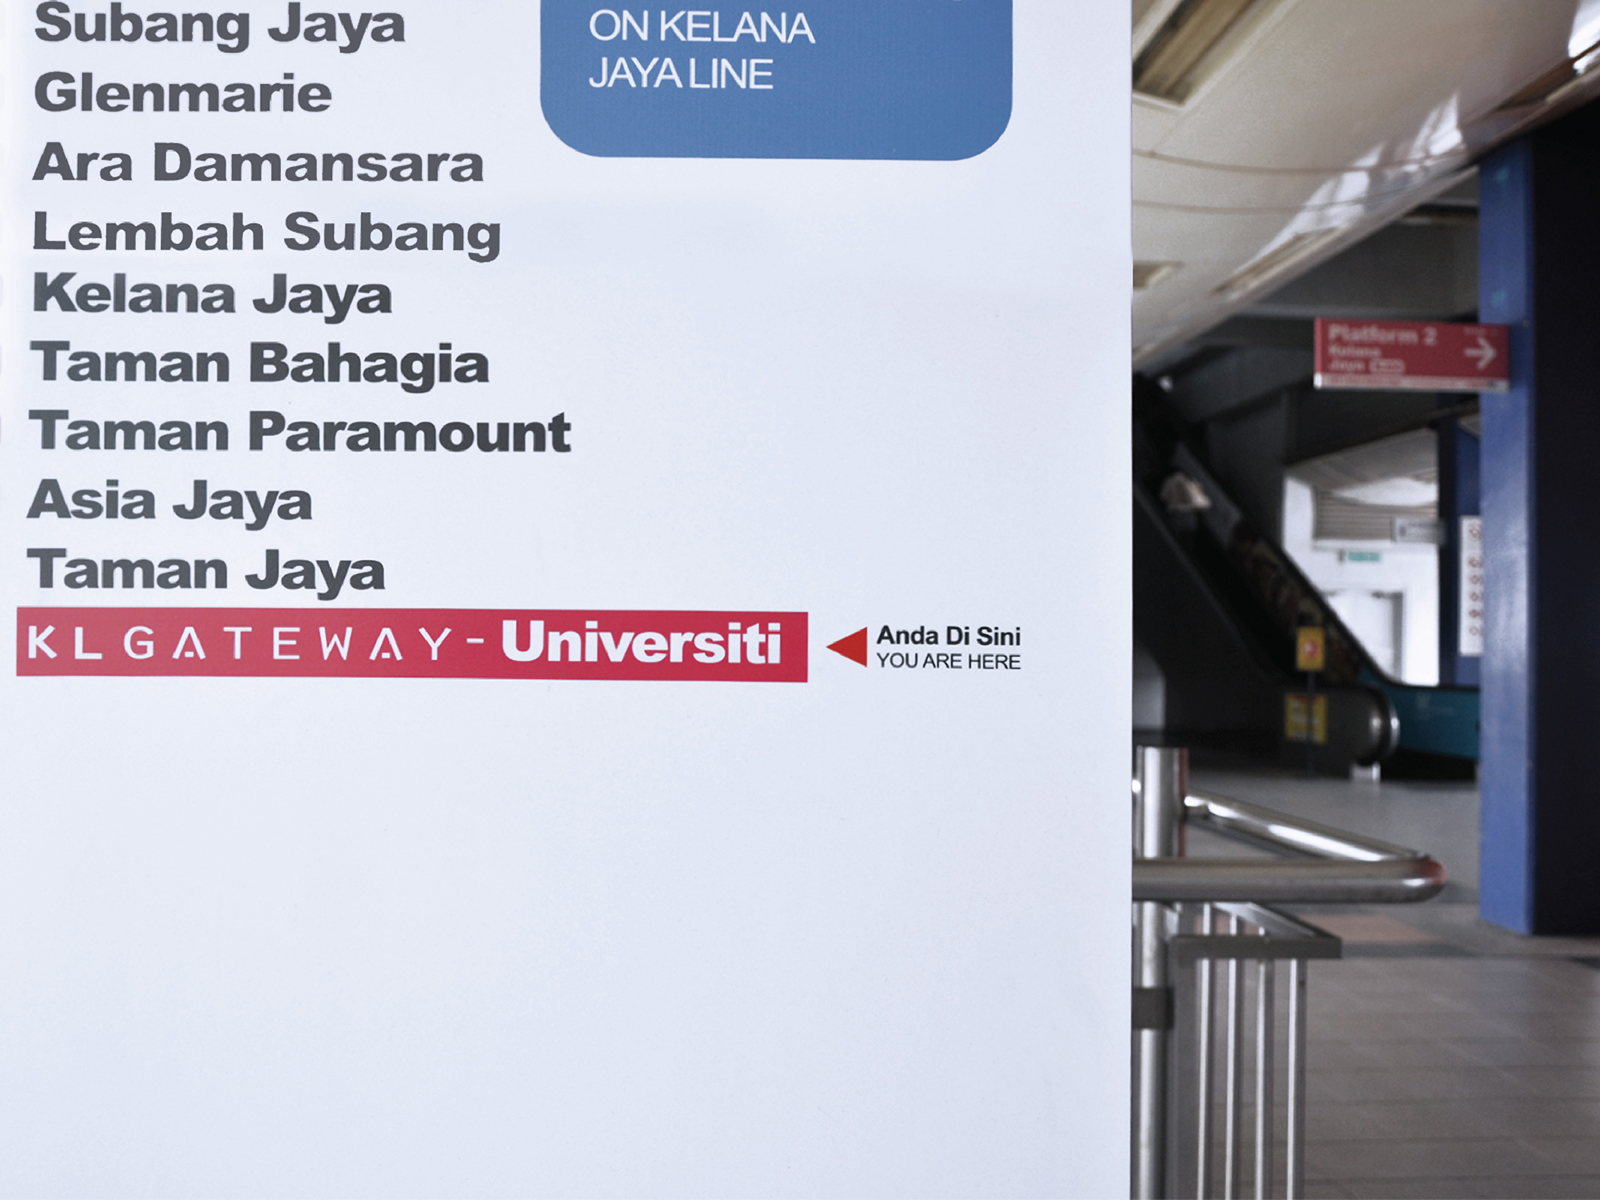 KL Gateway by Suezcap train station brand advertisement takeover and name change to KL Gateway seen on train route signage